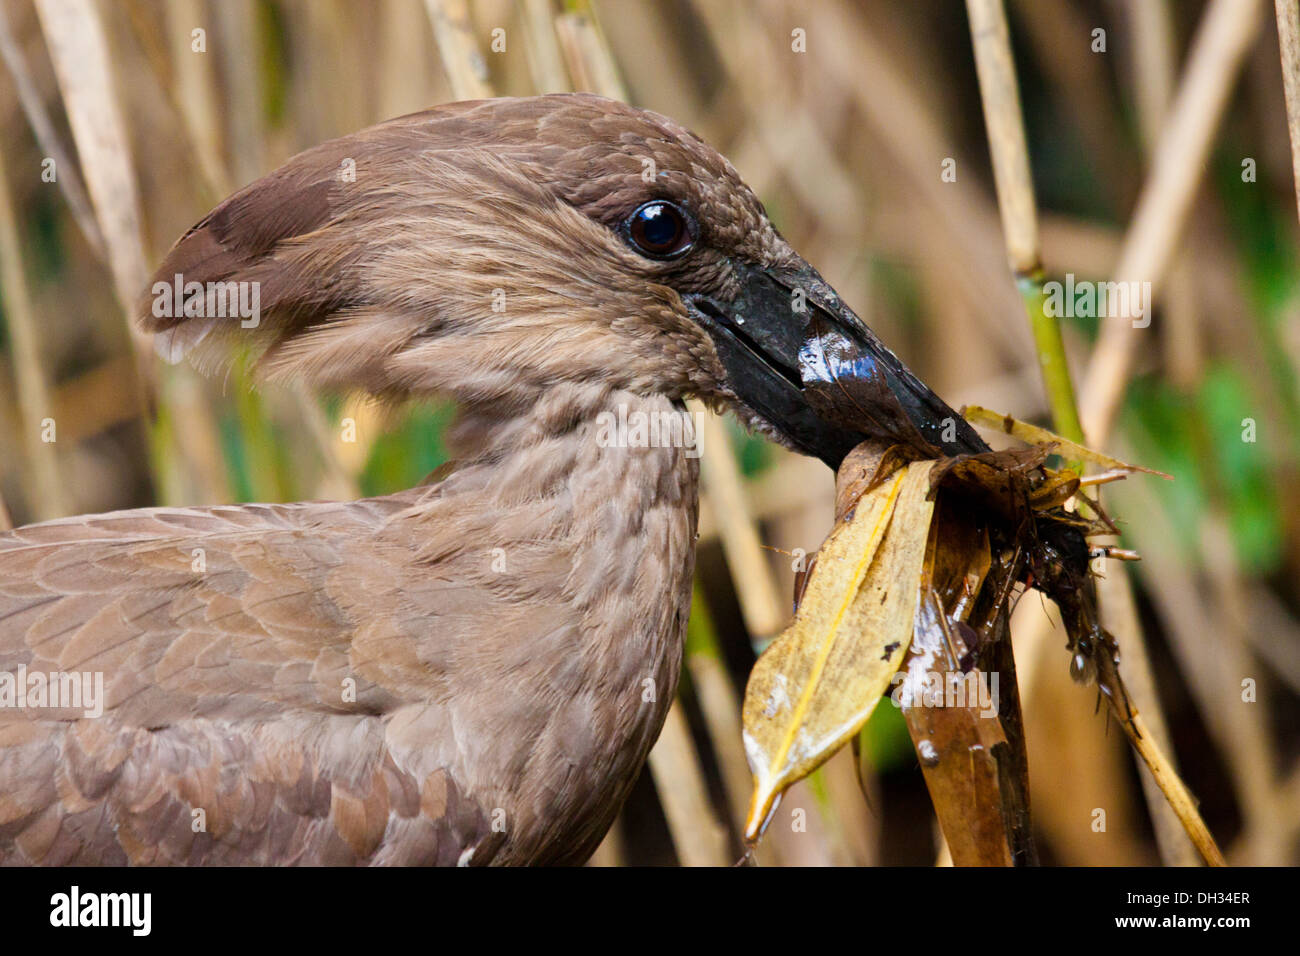 Hamerkop (Scopus umbretta) Stock Photo